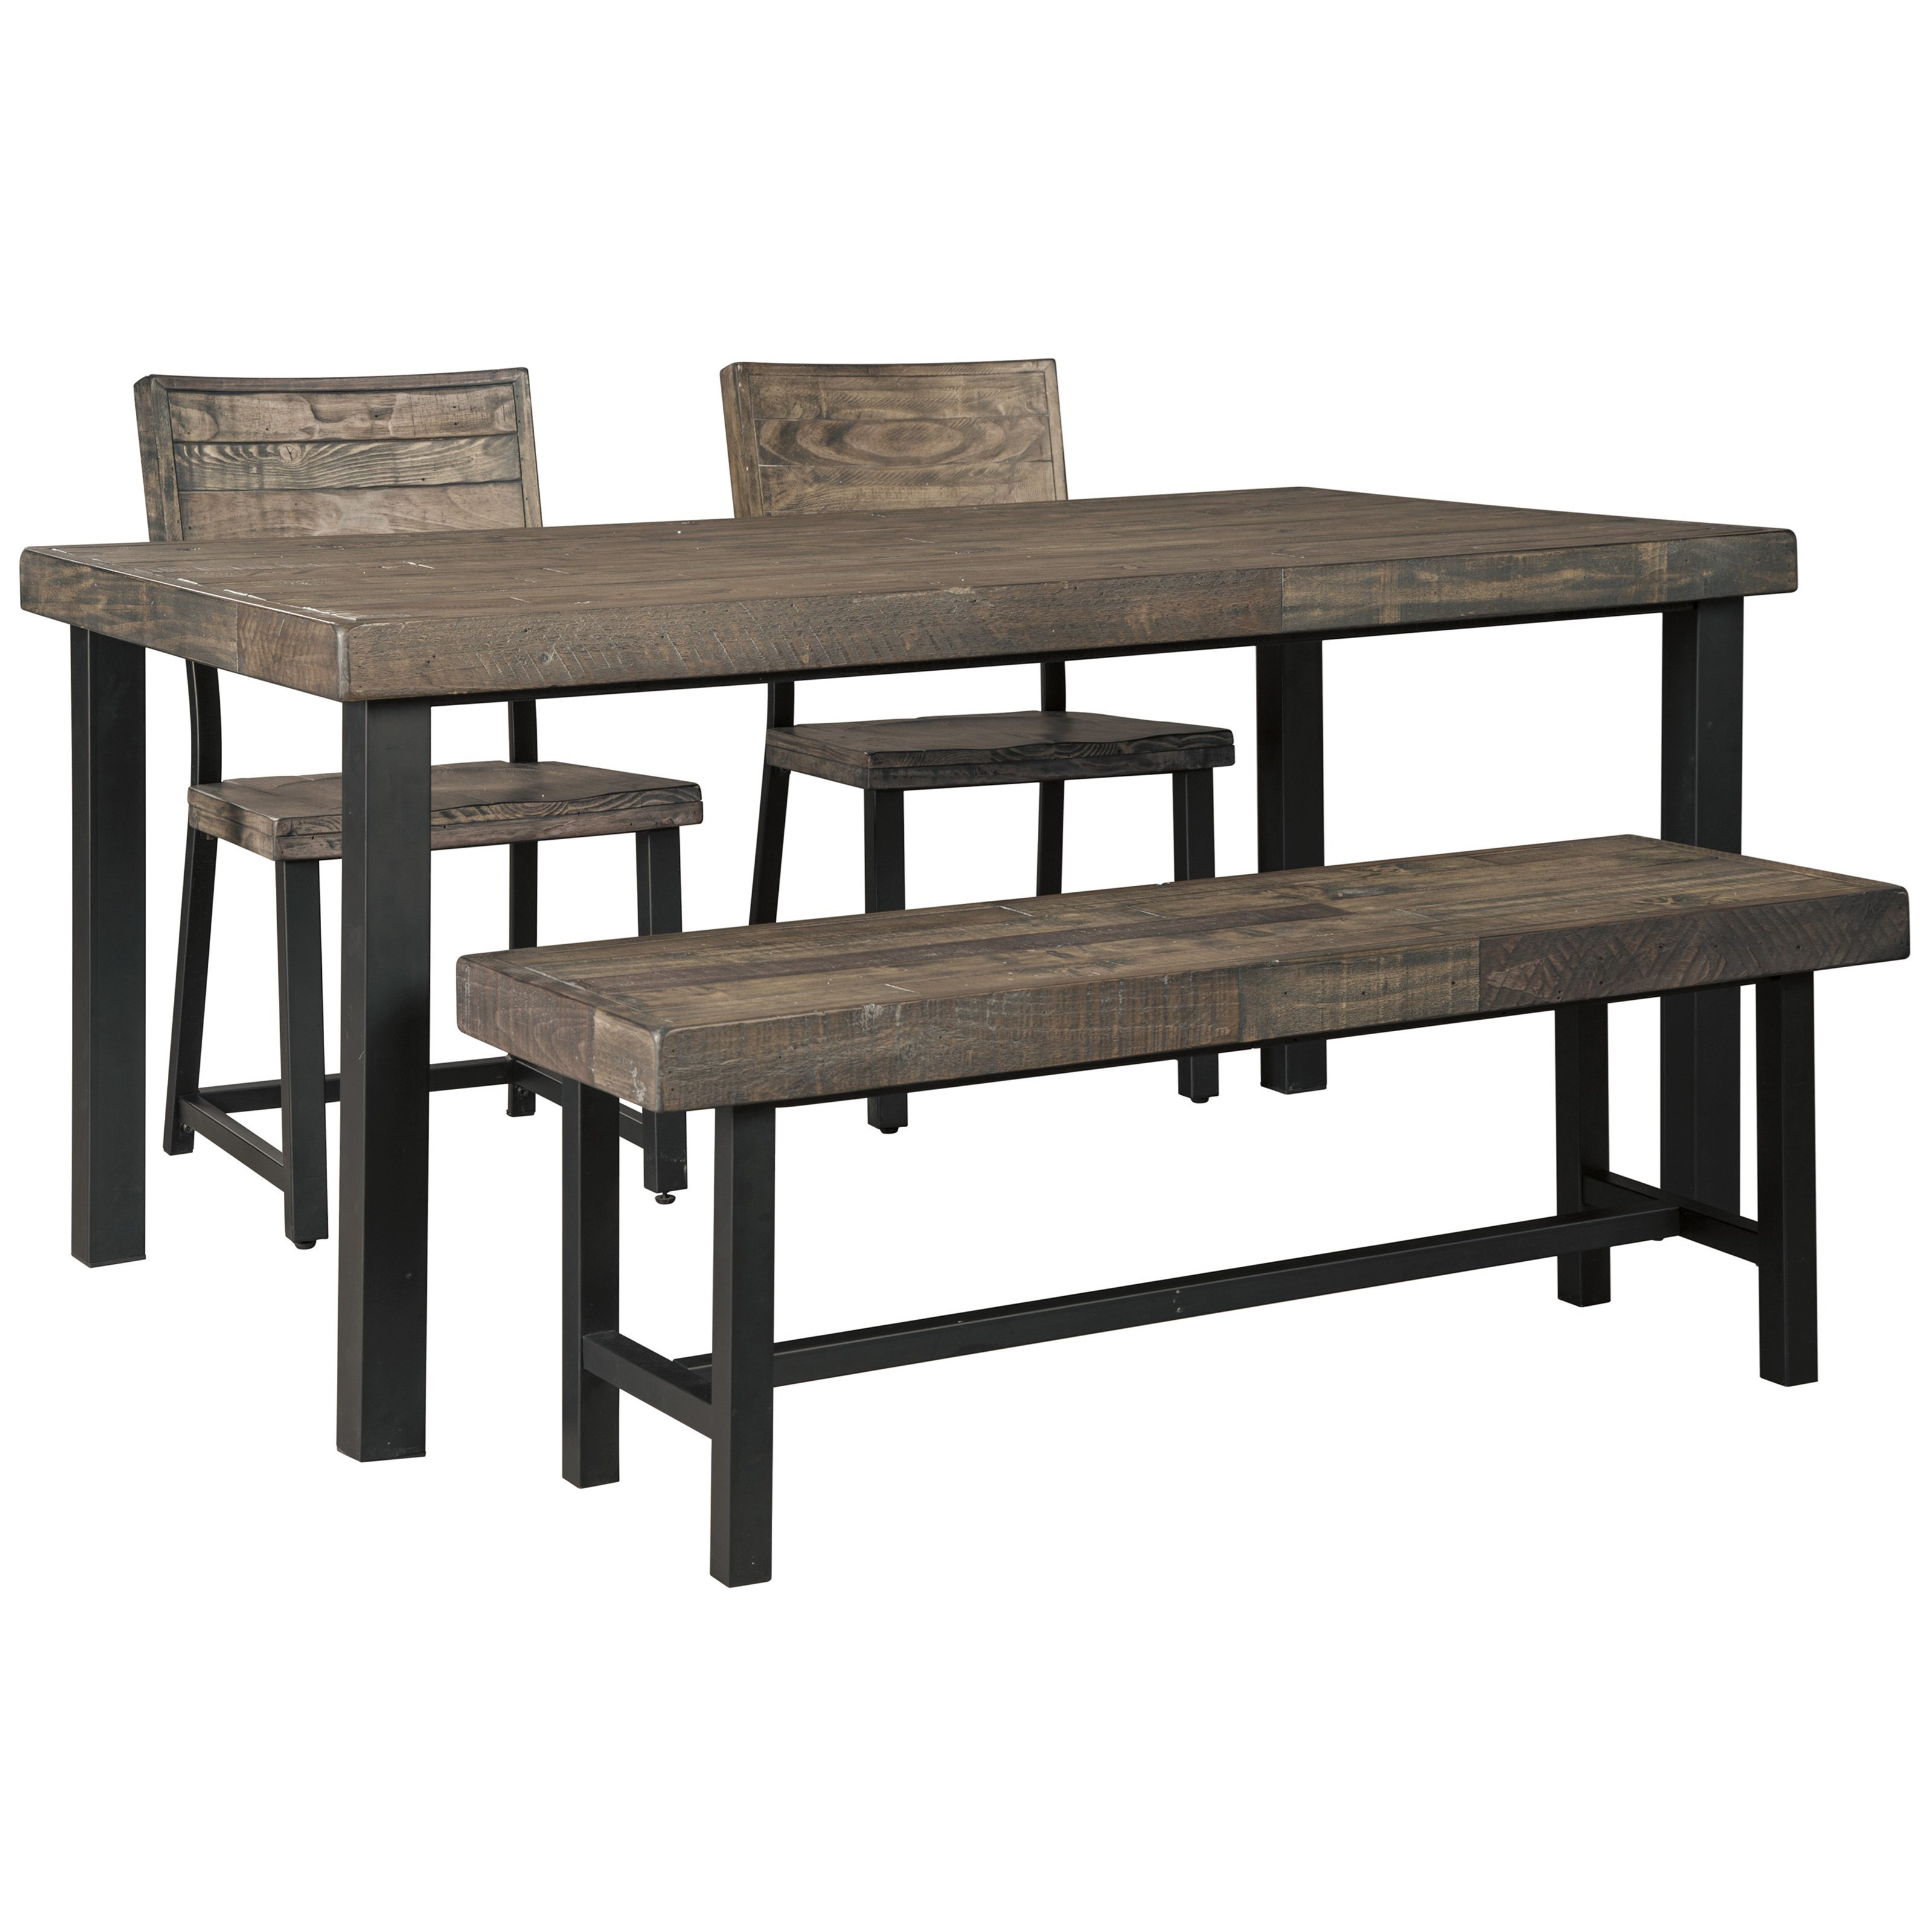 Cazentine 4-Piece Dining Table Set with Bench by Signature Design by Ashley at Lapeer Furniture & Mattress Center